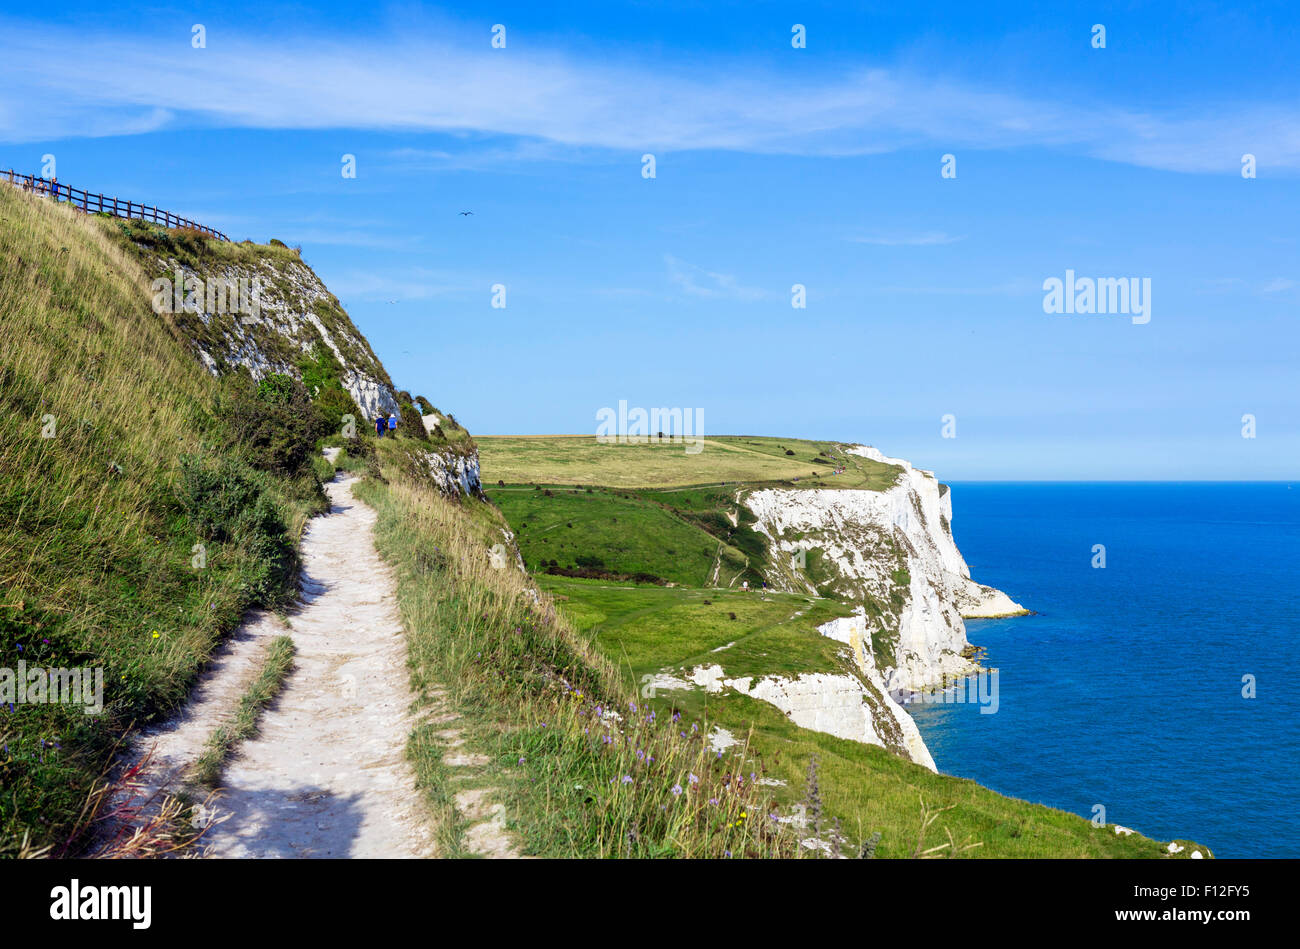 Clifftop path at the White Cliffs, Dover, Kent, England, UK - Stock Image